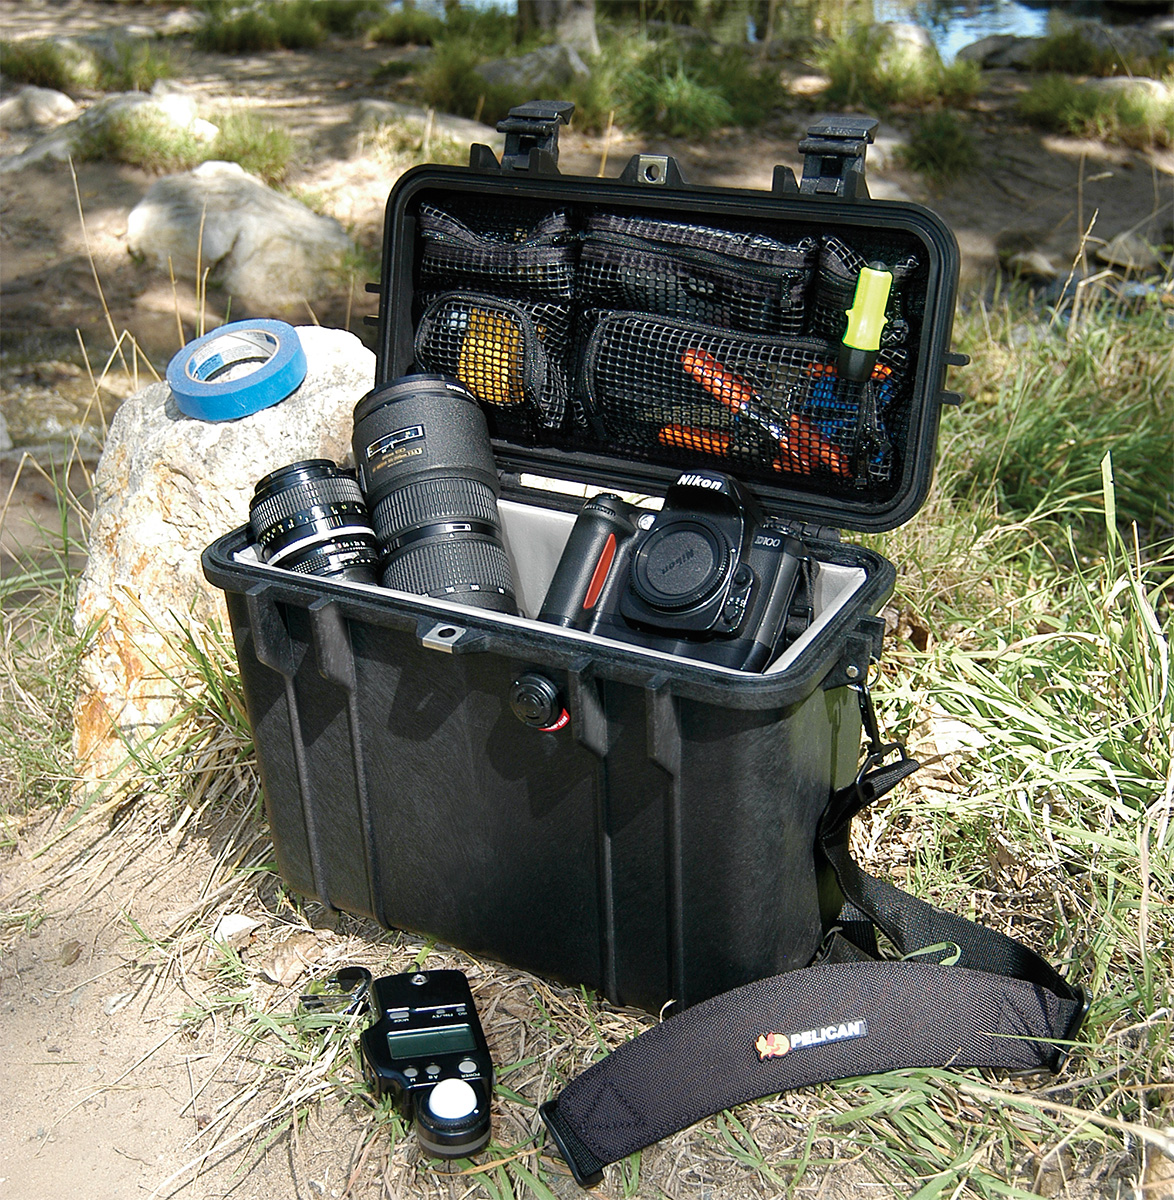 pelican 1430 outdoor waterproof camera case